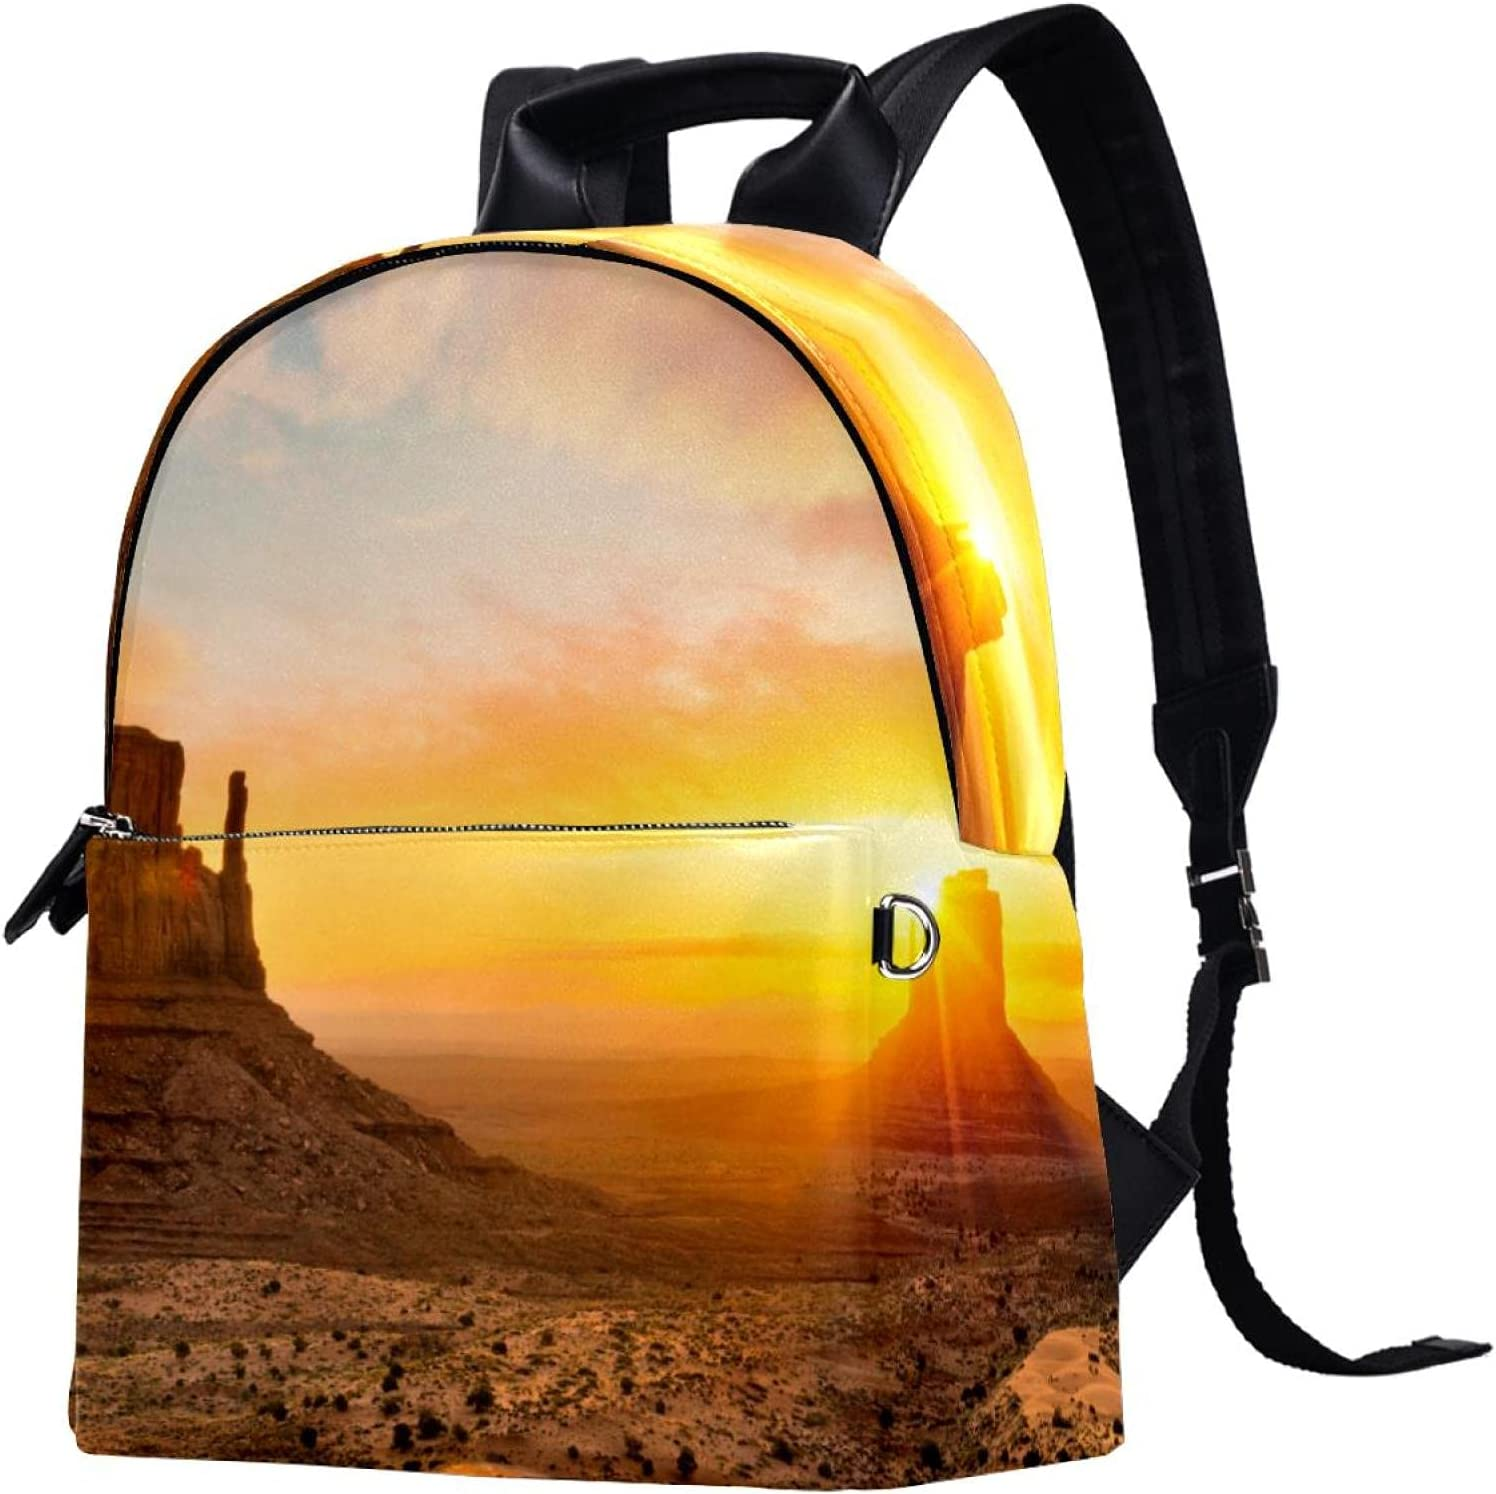 Backpack Max 81% OFF Max 80% OFF Size: 14.5x12.5x5.9 in Fashion Casual Leather